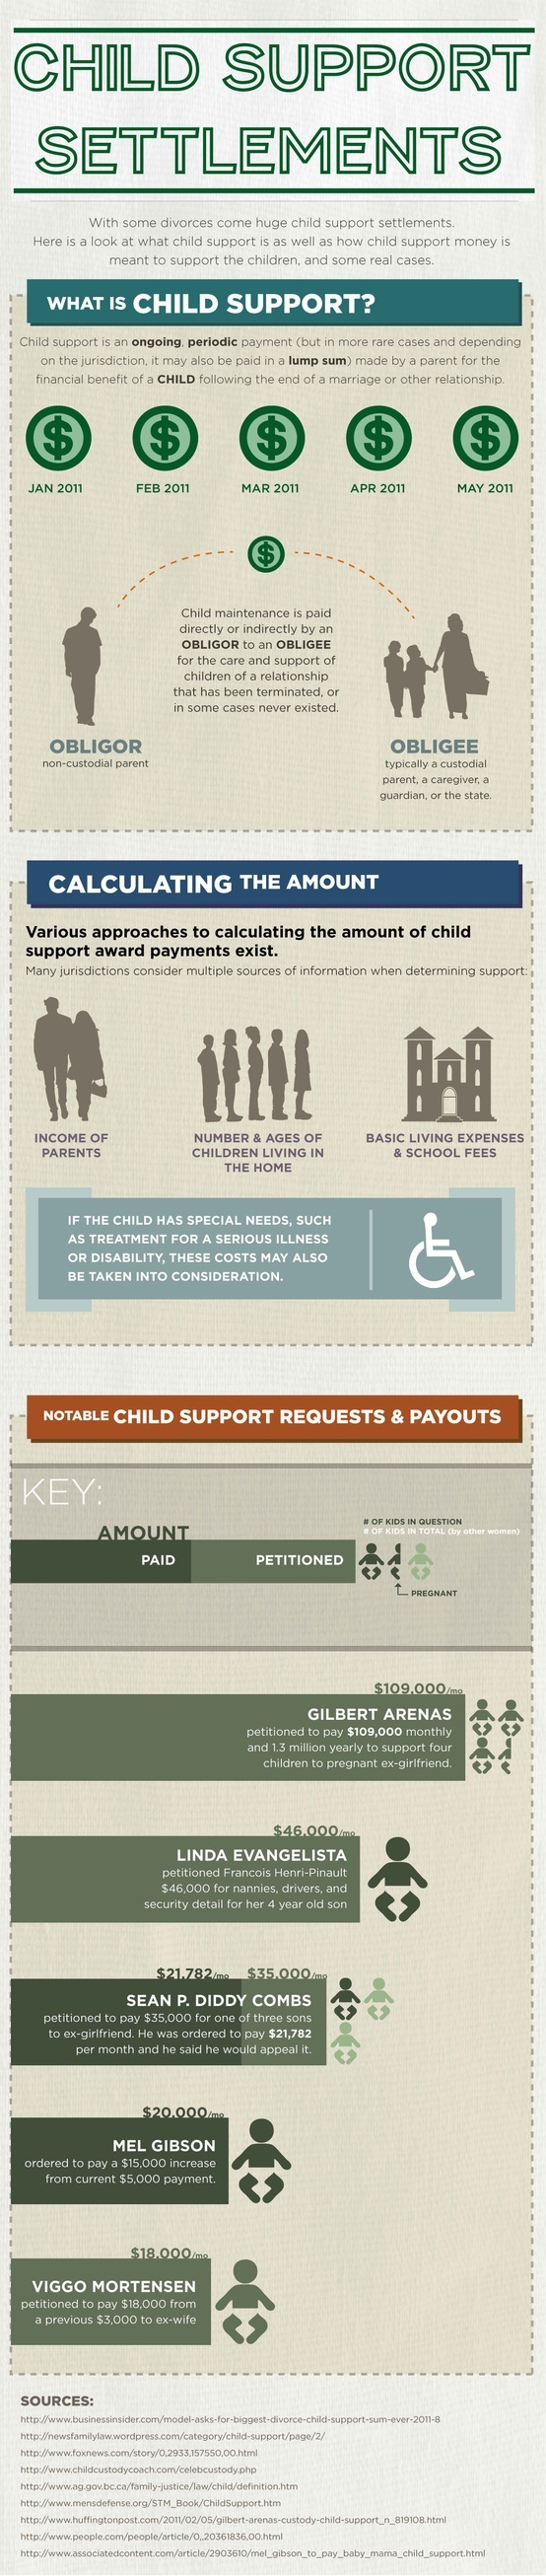 Arizona Legal Document Services, L.L.C. can assist you with establishing, modifying or enforcing child support.